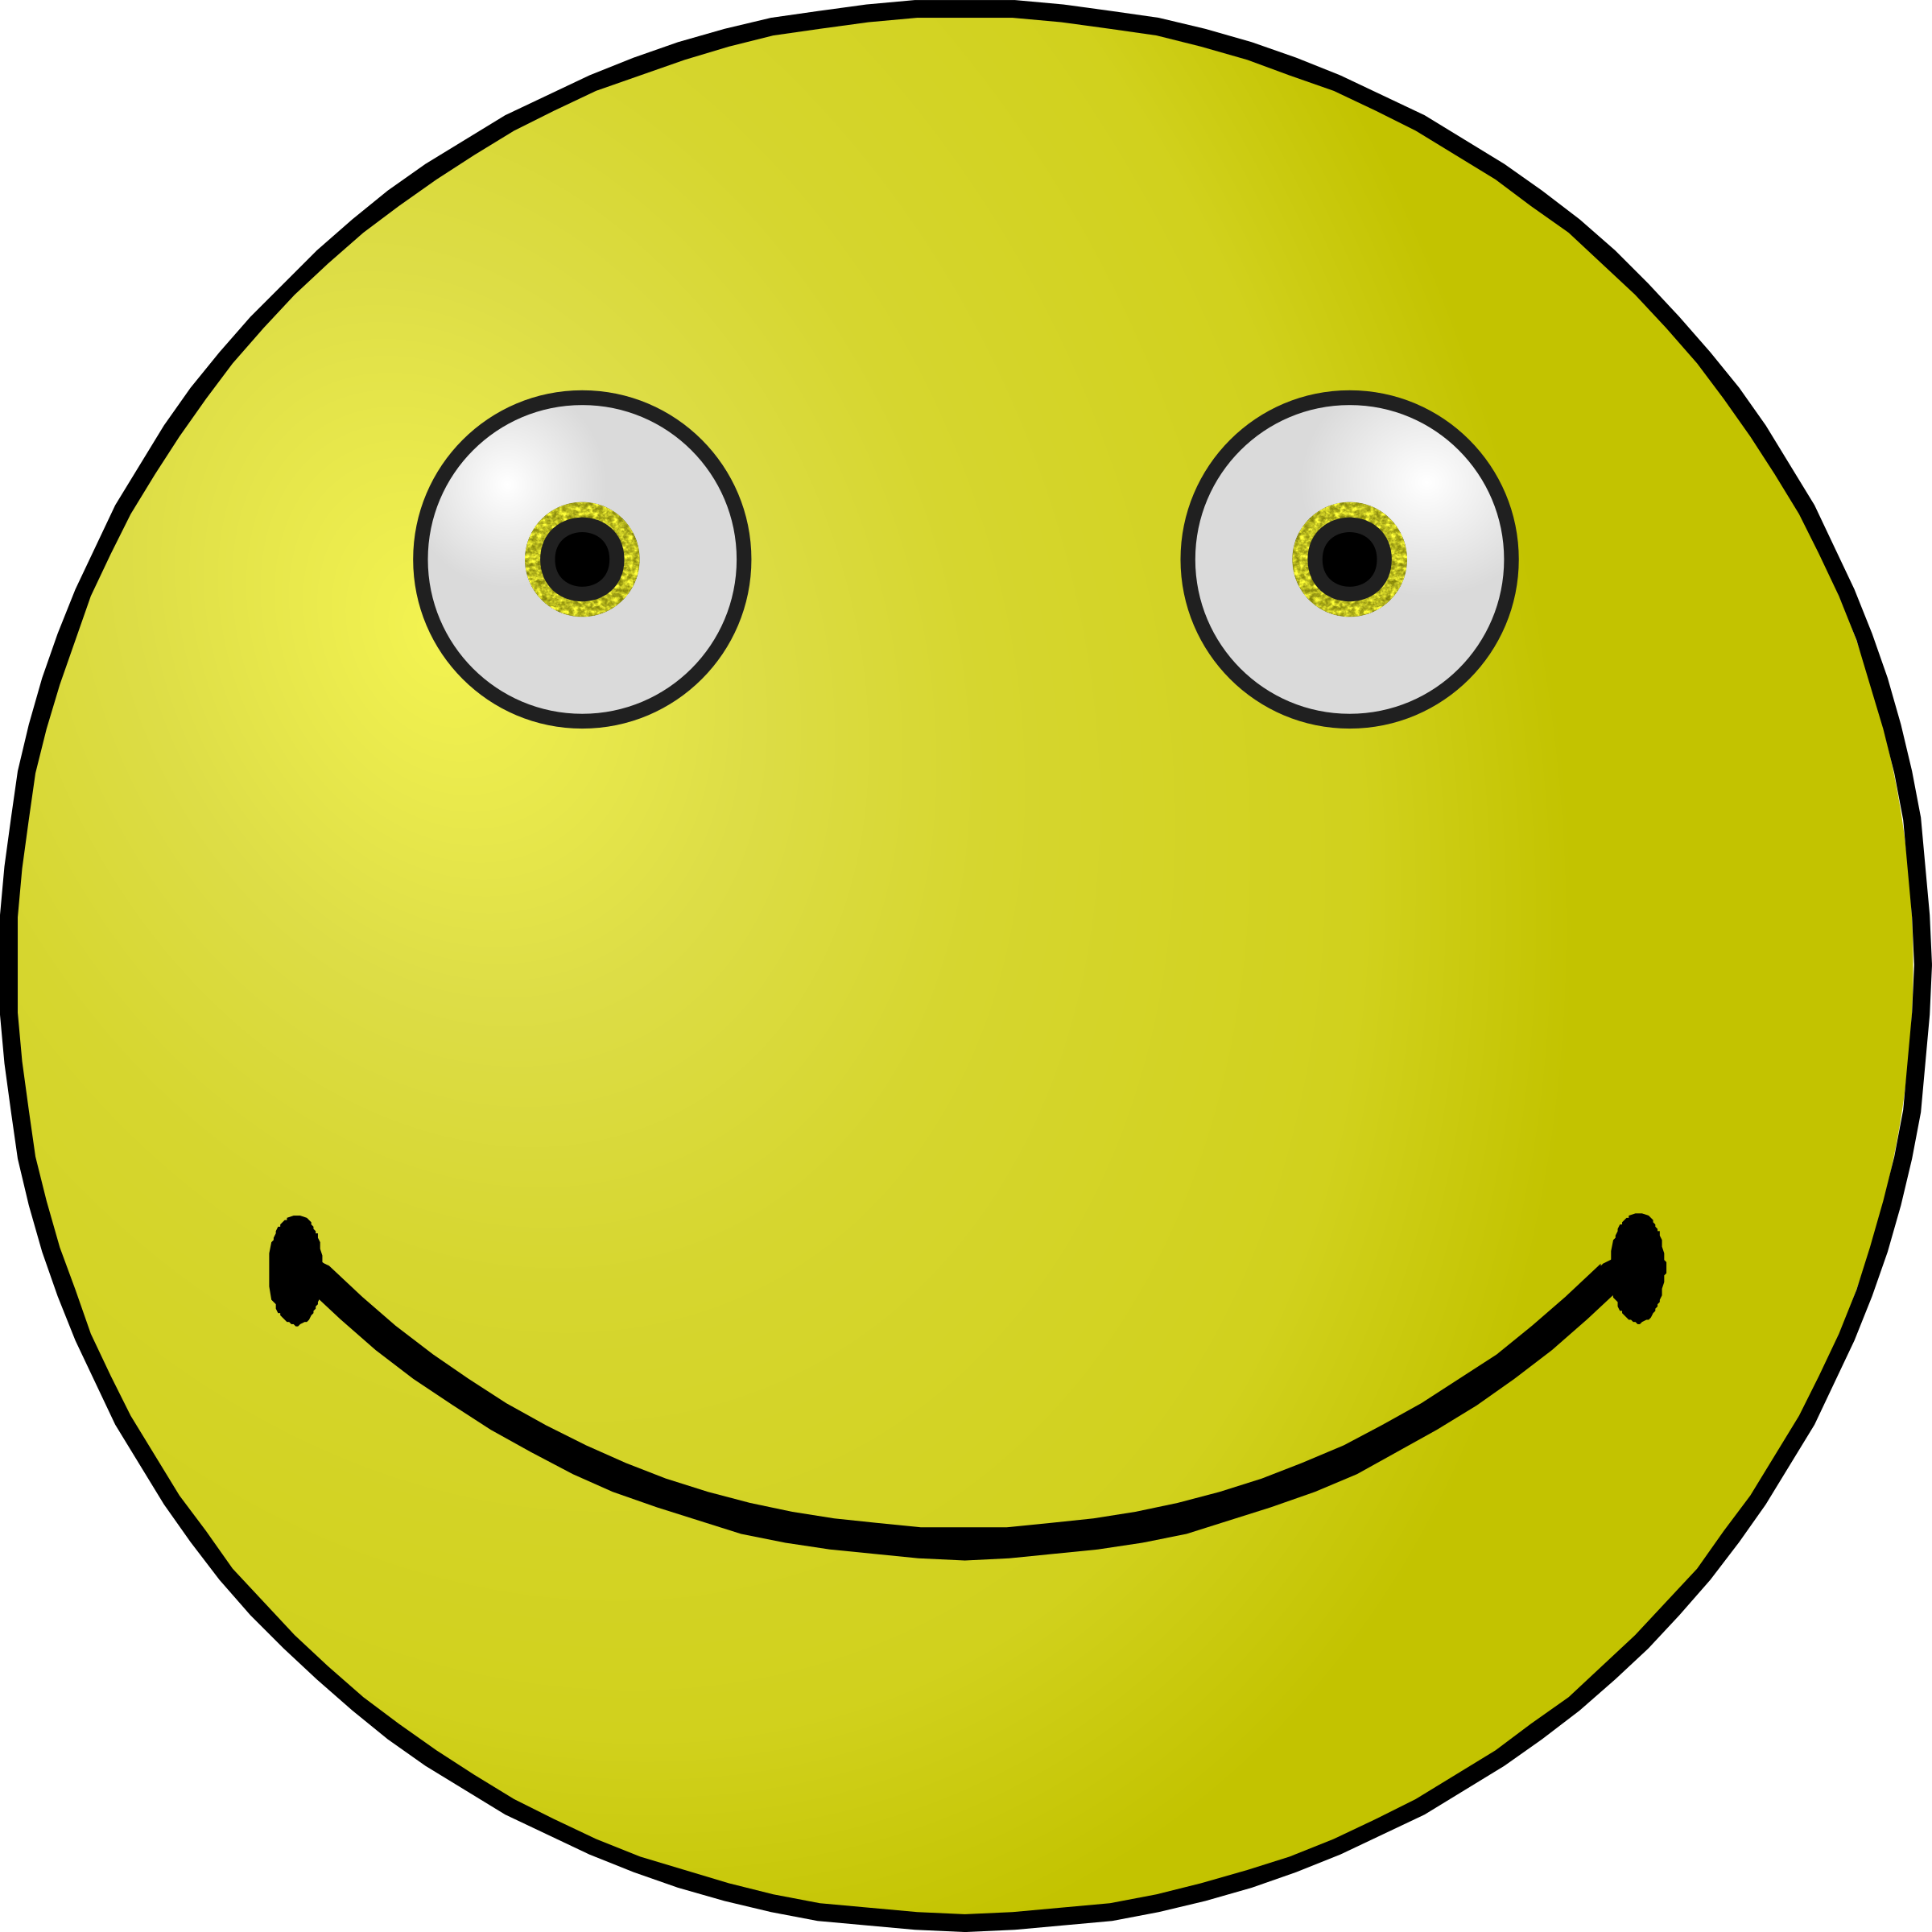 Wednesday clipart smiley.